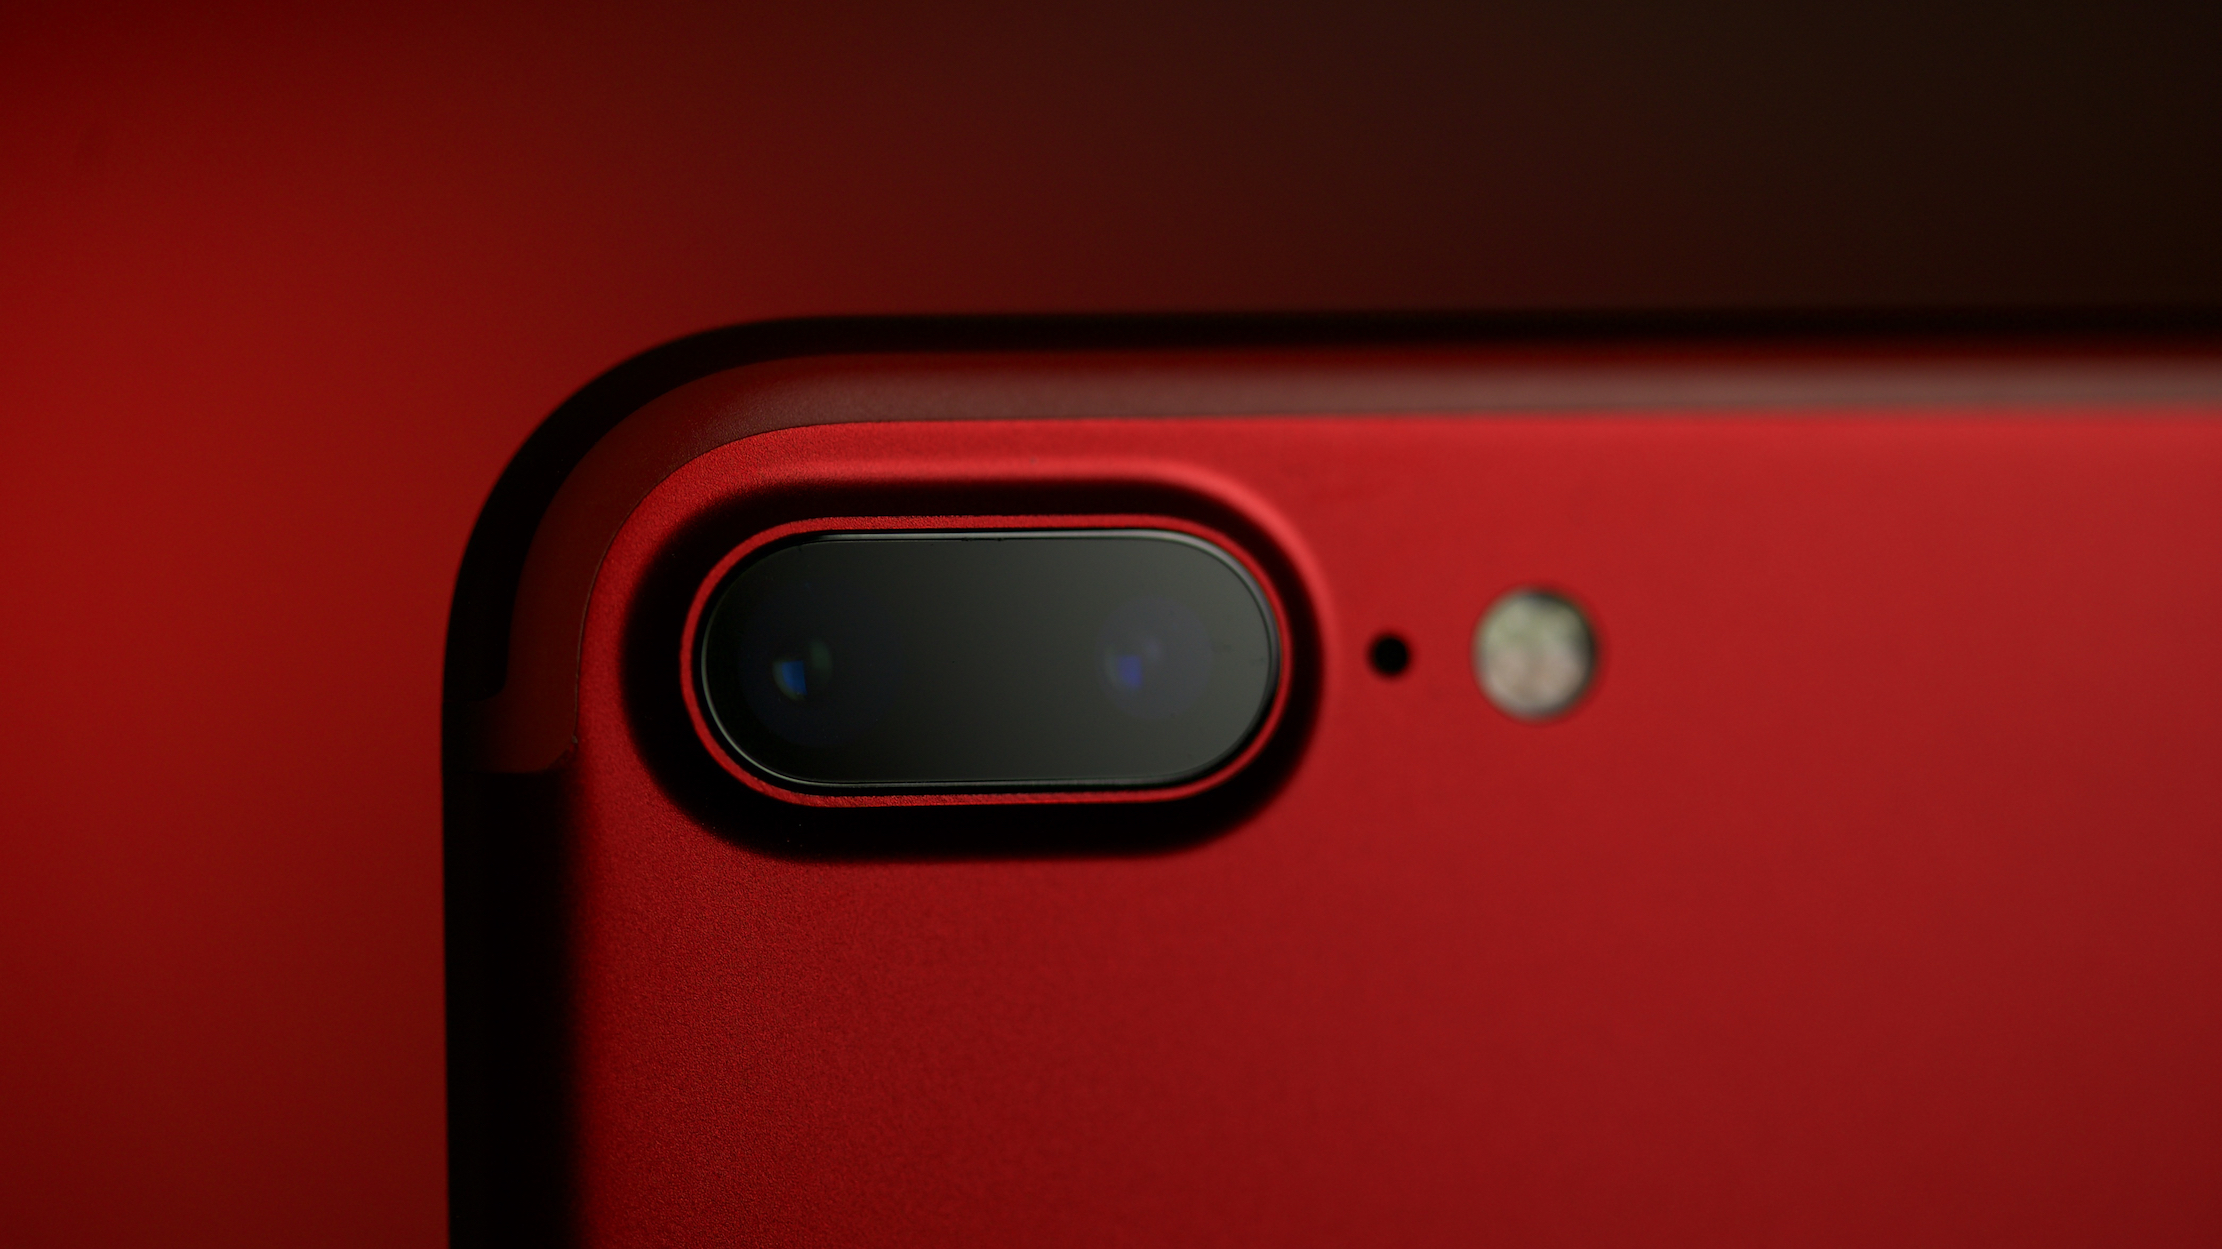 Angeblich ab morgen: (PRODUCT) RED iPhone 8 und iPhone 8 Plus